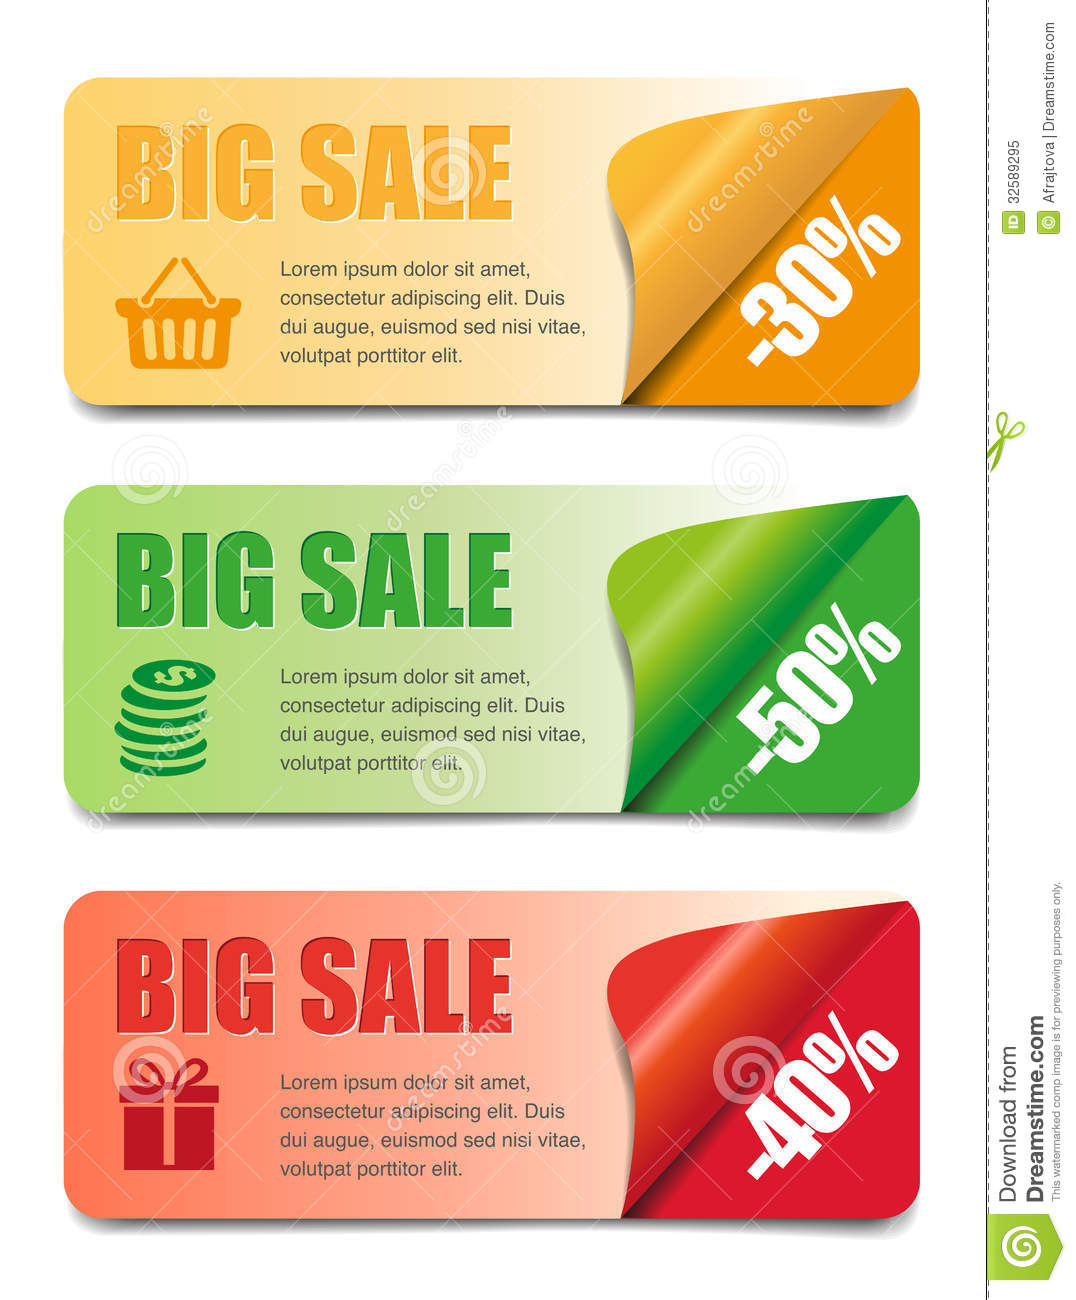 Three Sales Banners Royalty Free Stock Photo - Image: 32589295